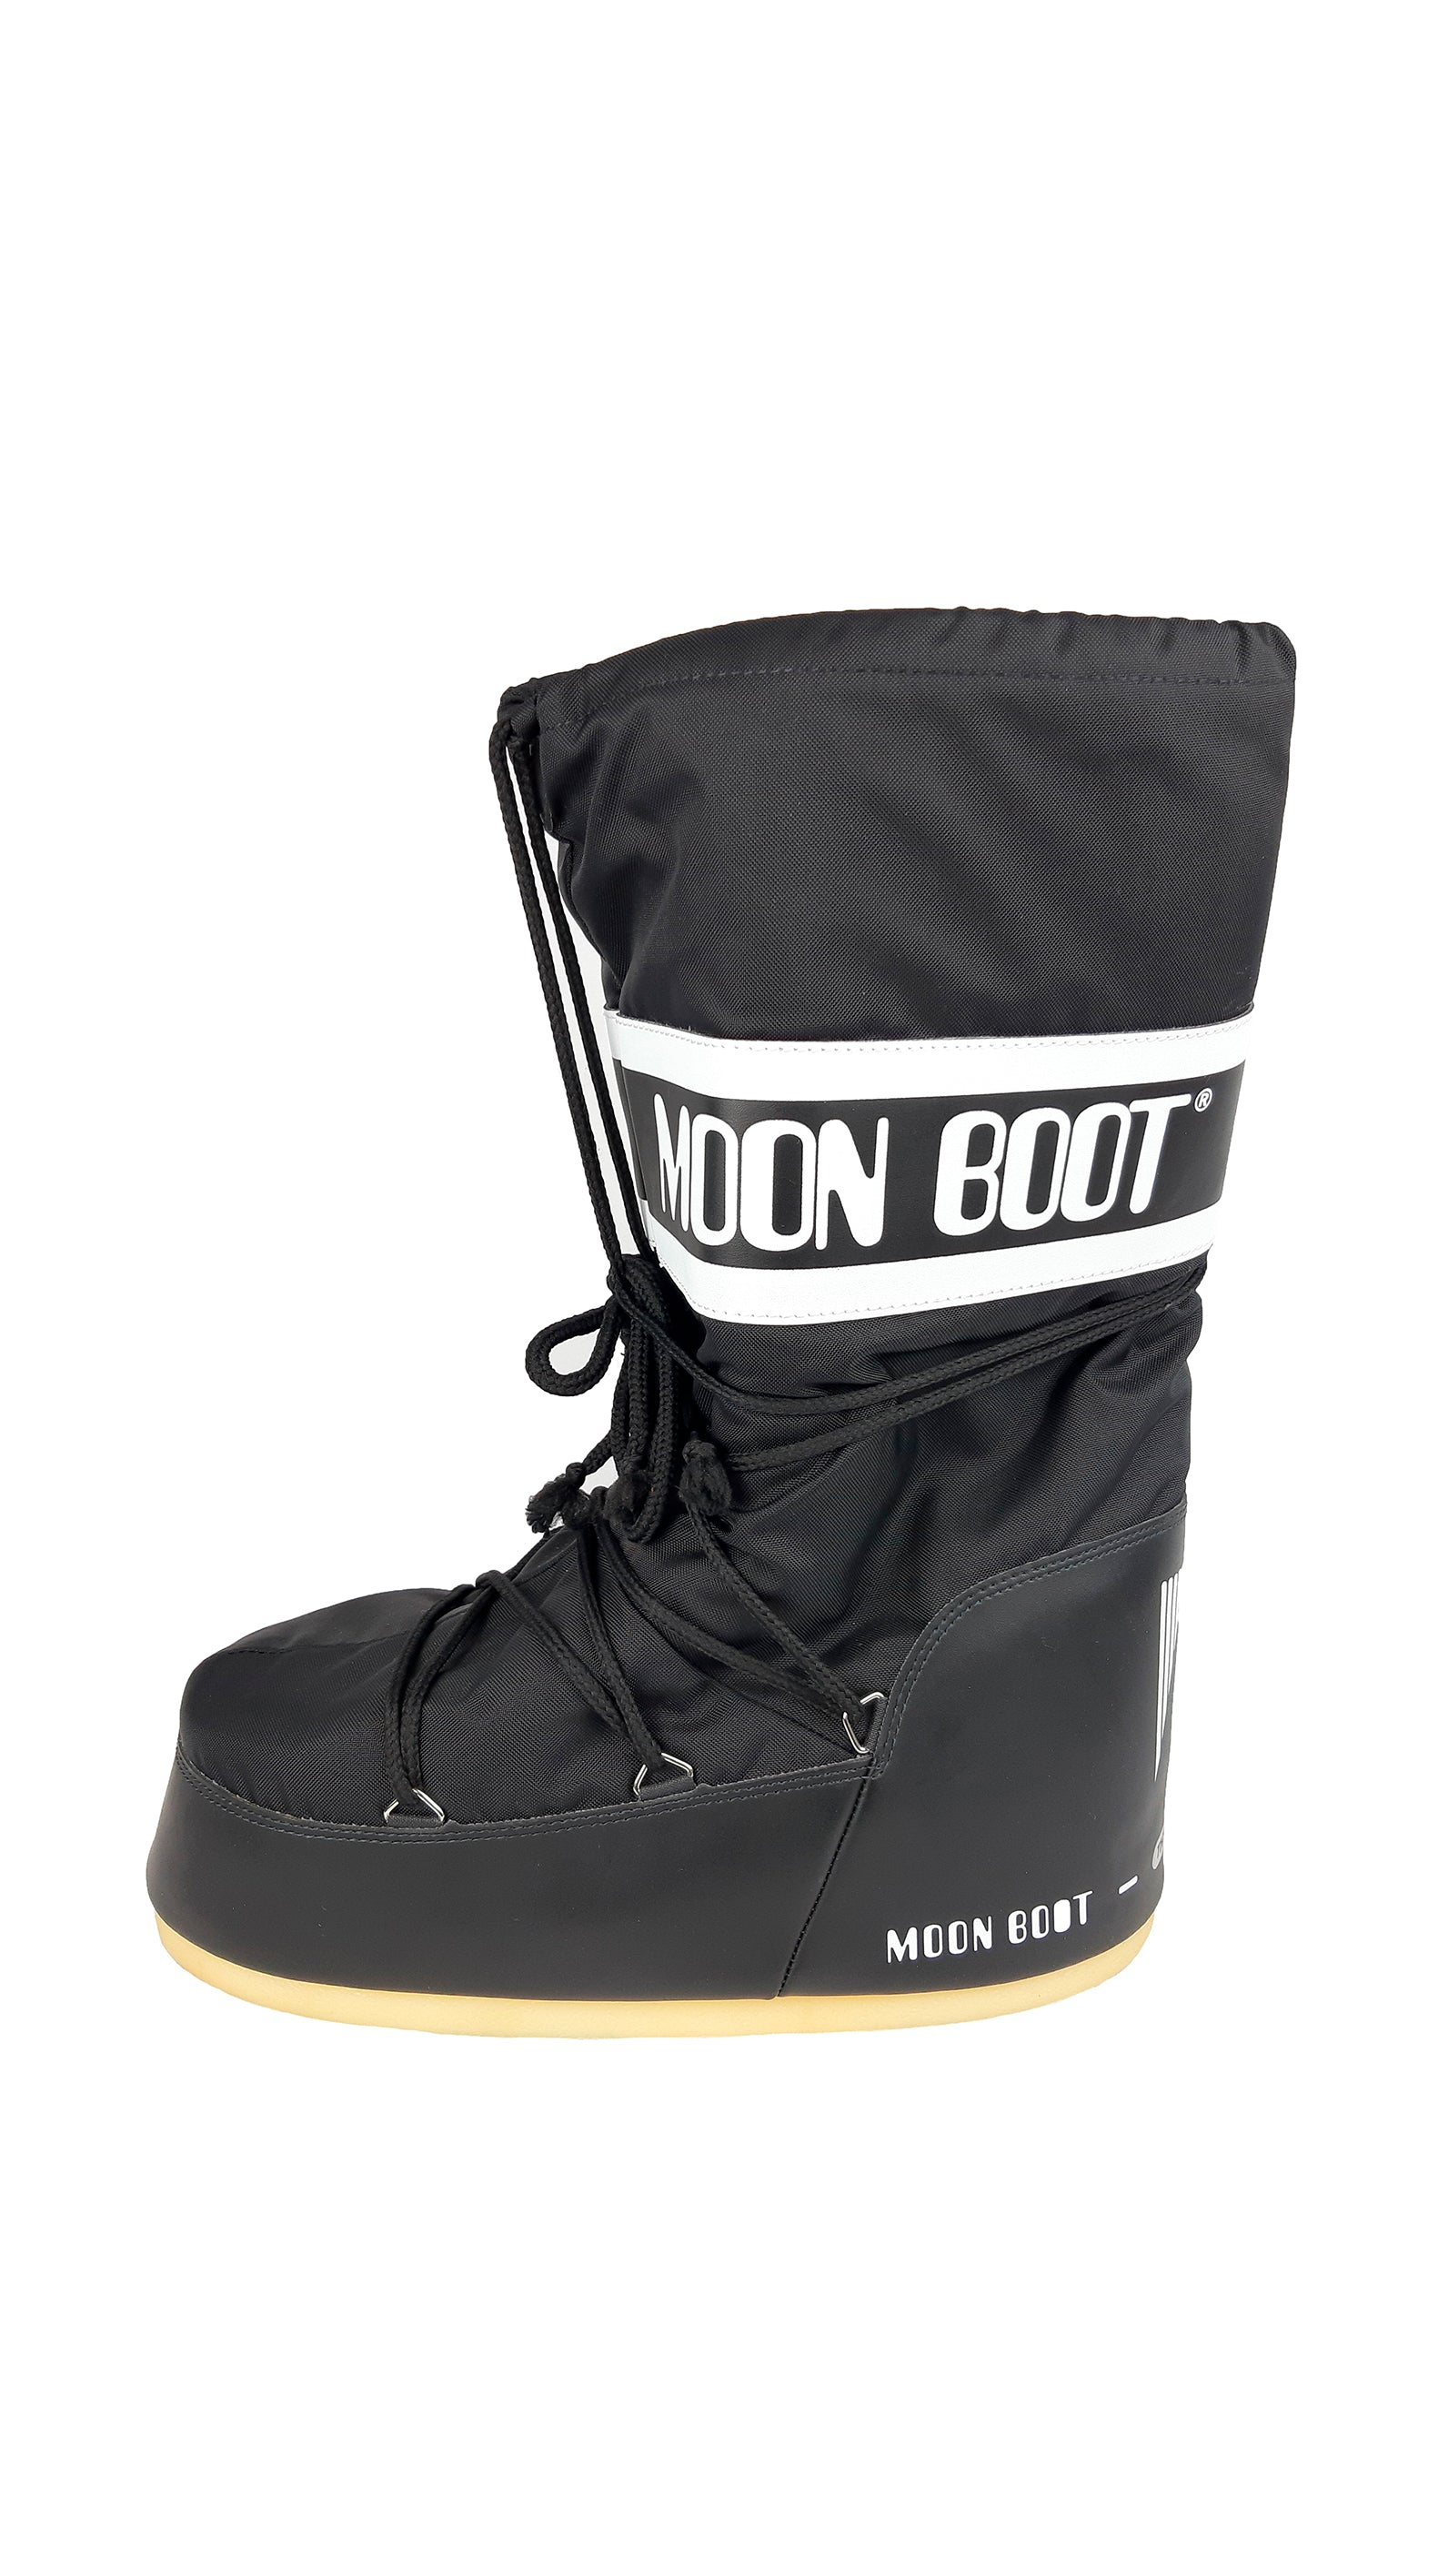 Moon Boots Snow Boots in Black and White Size 45/47